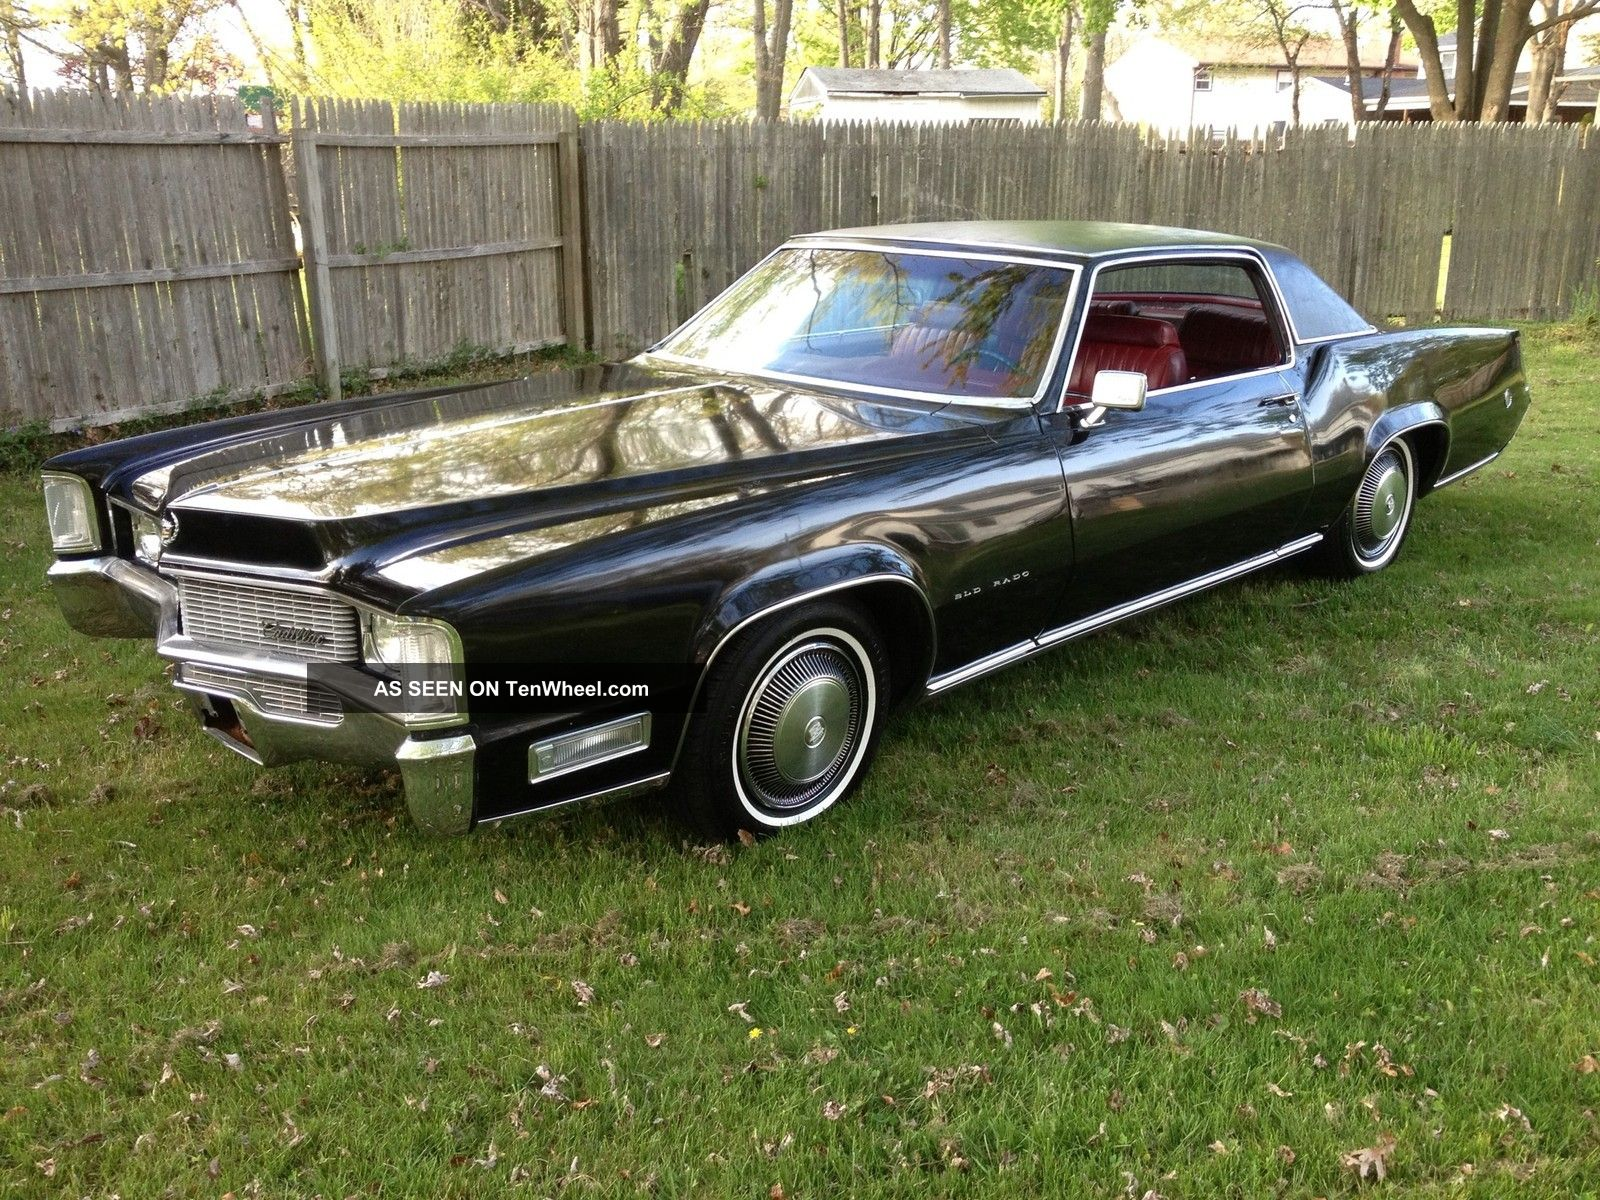 1969 Cadillac Eldorado 67k Survivor Right Colors Look